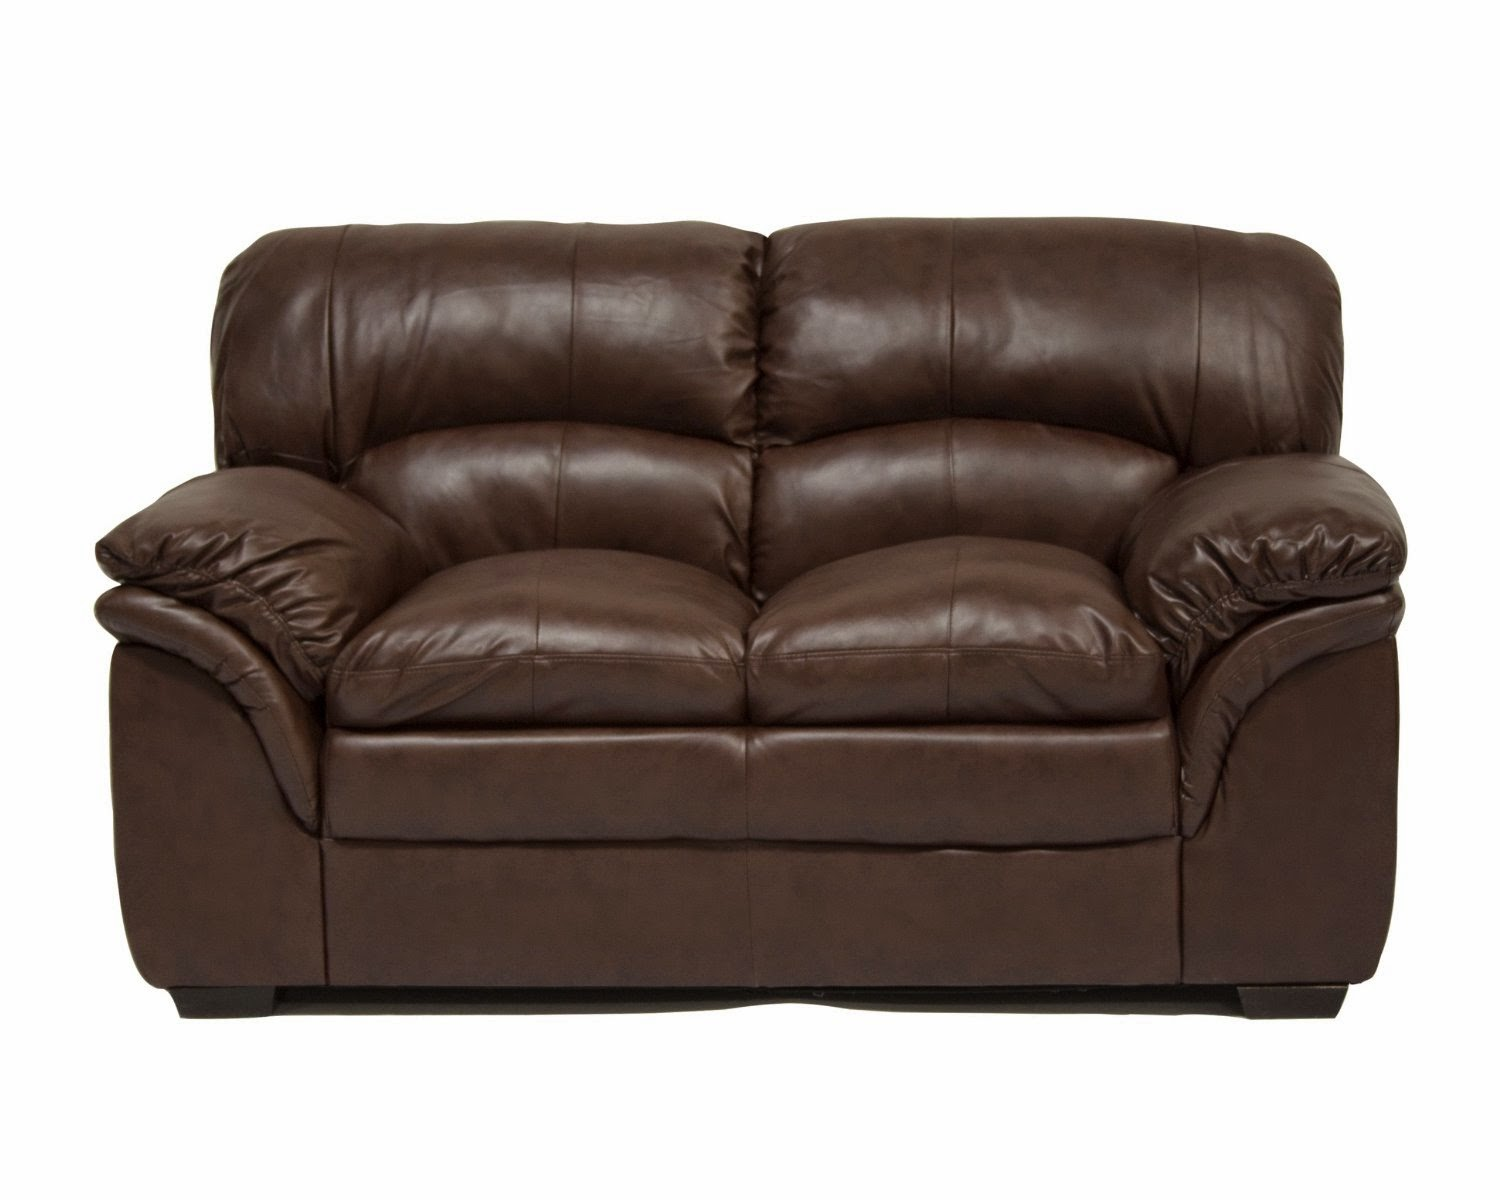 Best Leather Chairs The Best Reclining Sofas Ratings Reviews 2 Seater Leather